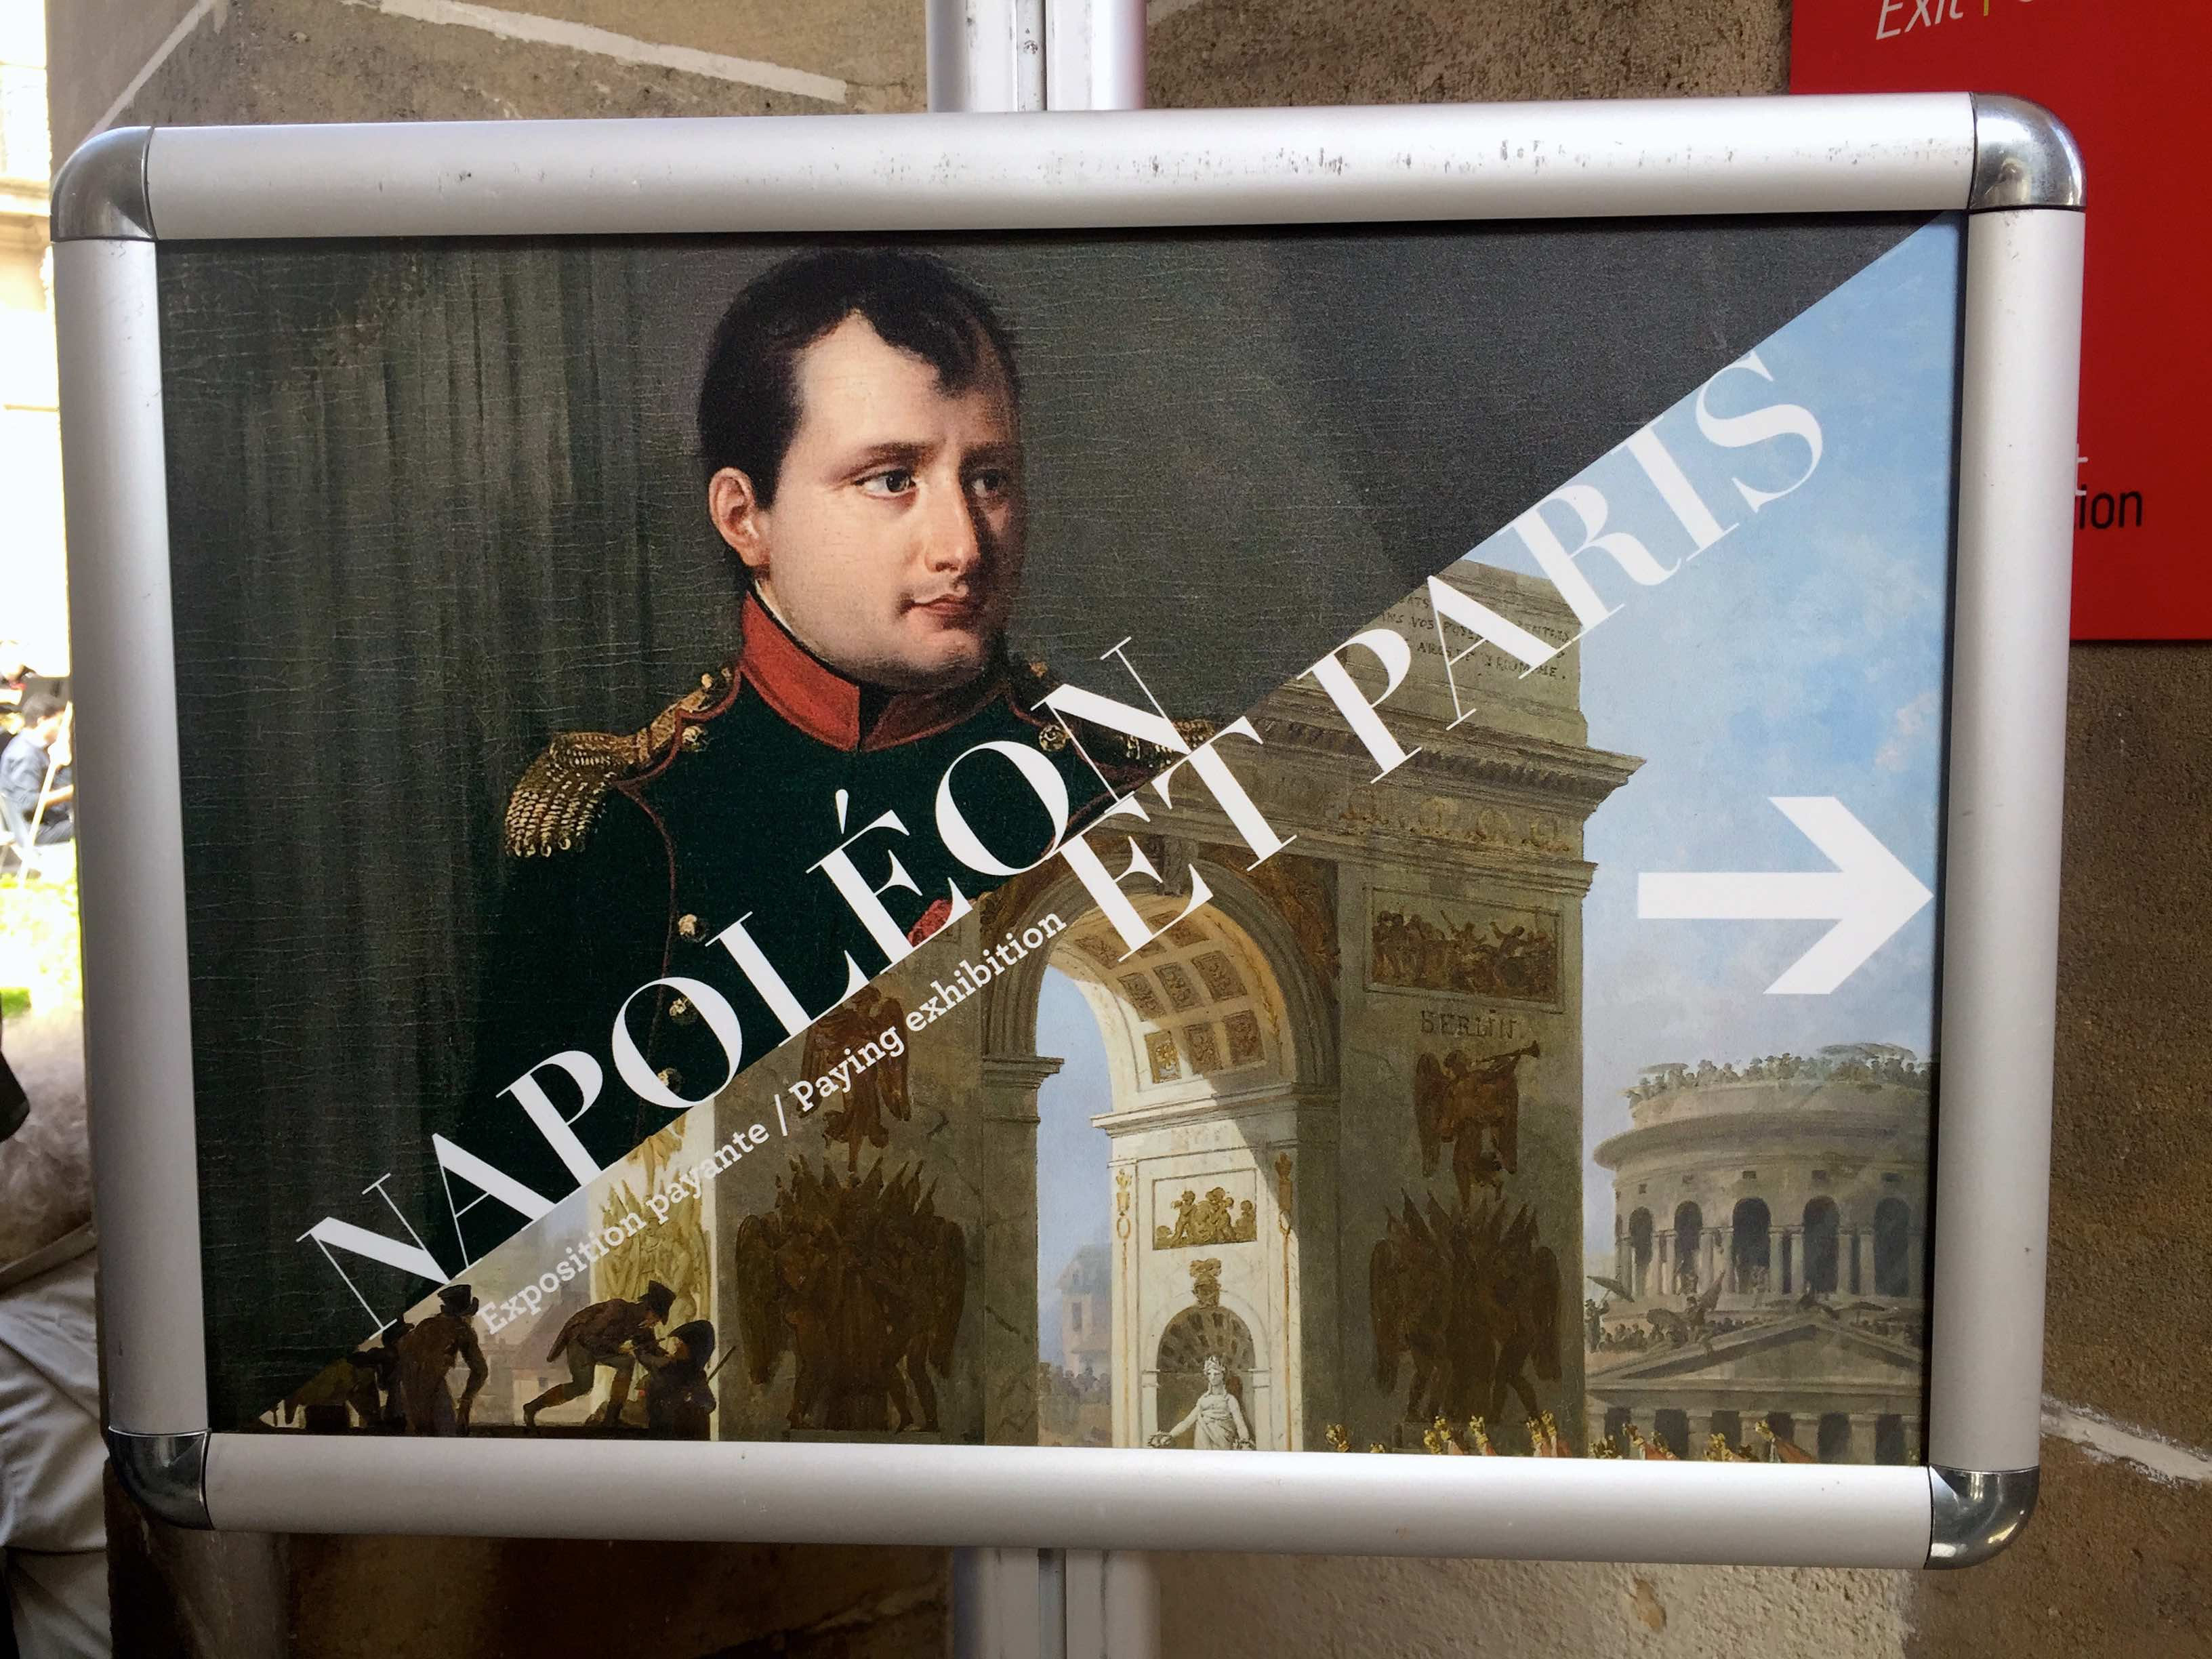 Entrance poster for Napoléon et Paris